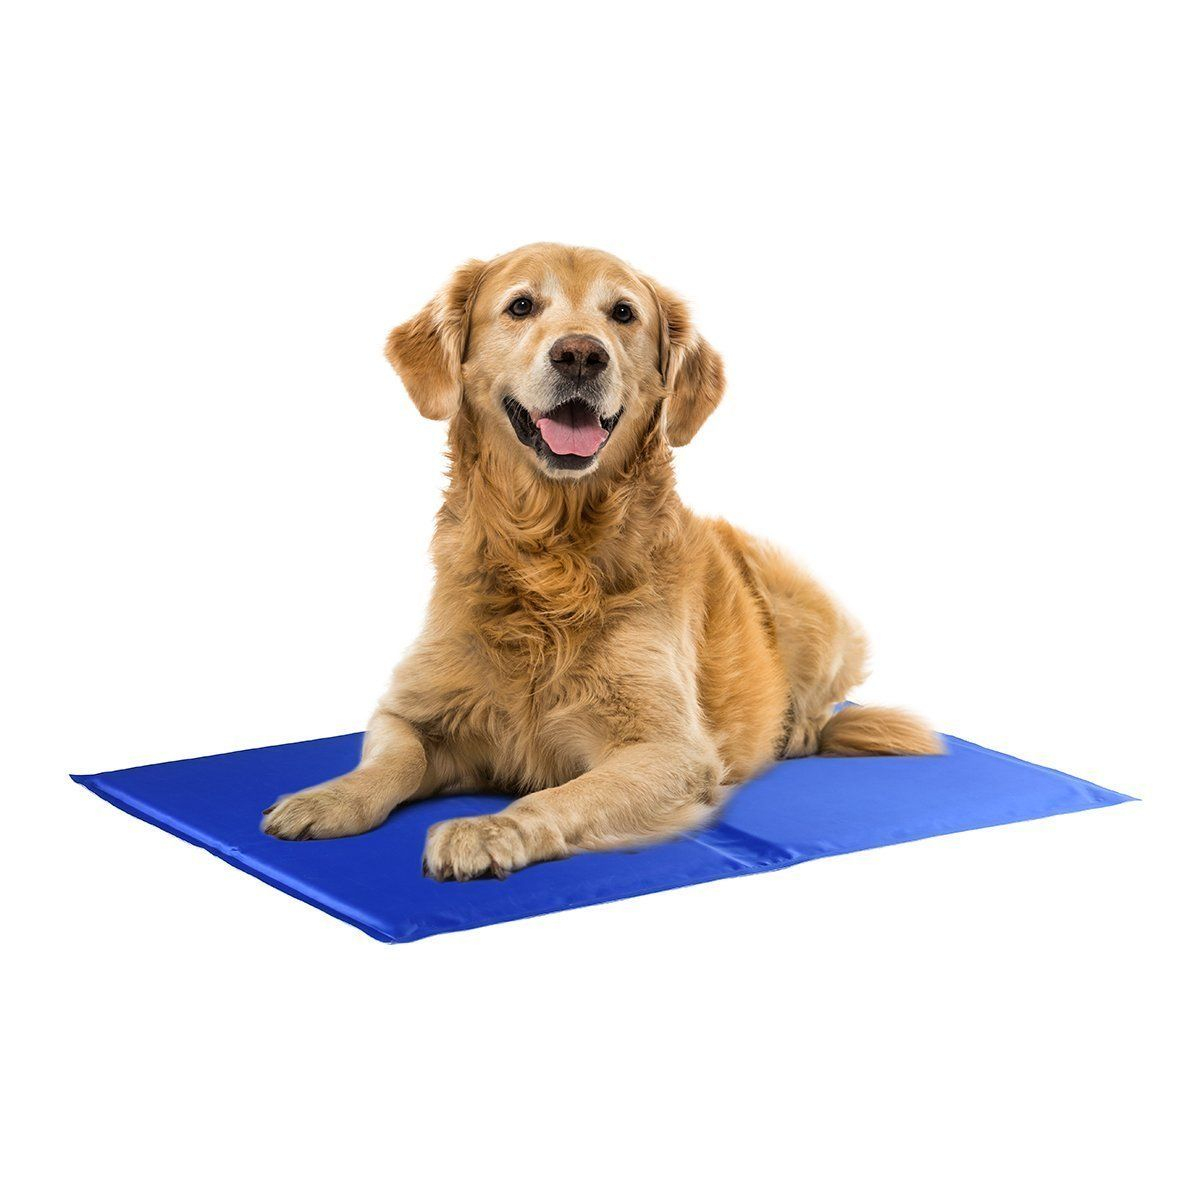 Isyoung Cooling Mat Cold Pad For Cats And Dogs Best For Keeping Pets Cool Read More Reviews Of The Produ Pet Cooling Mat Dog Cooling Pad Pet Cooling Pad